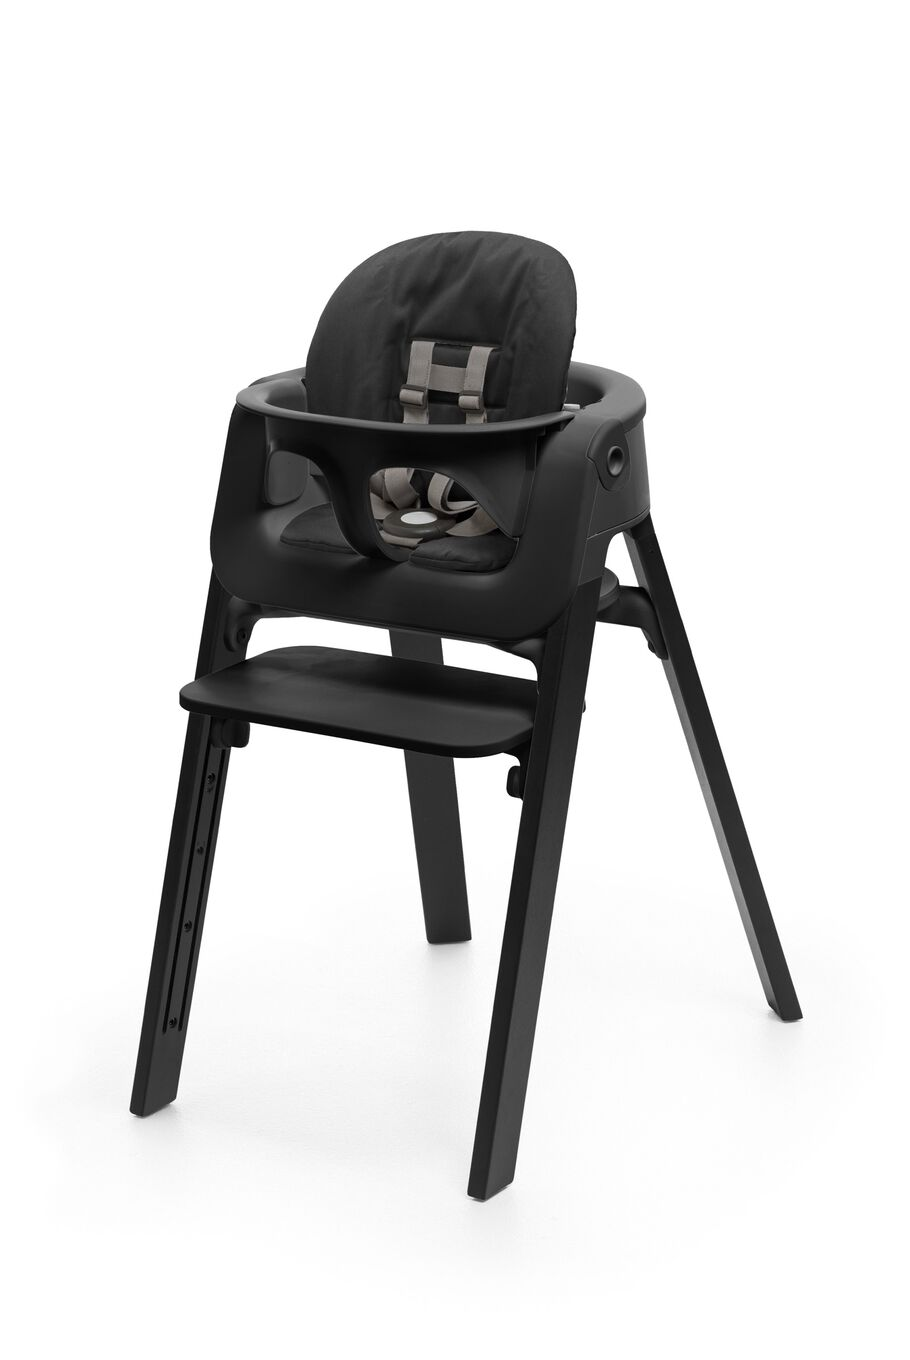 Stokke® Steps™ Chair Oak Black, with Baby Set White and Cushion Soft Sprinkle